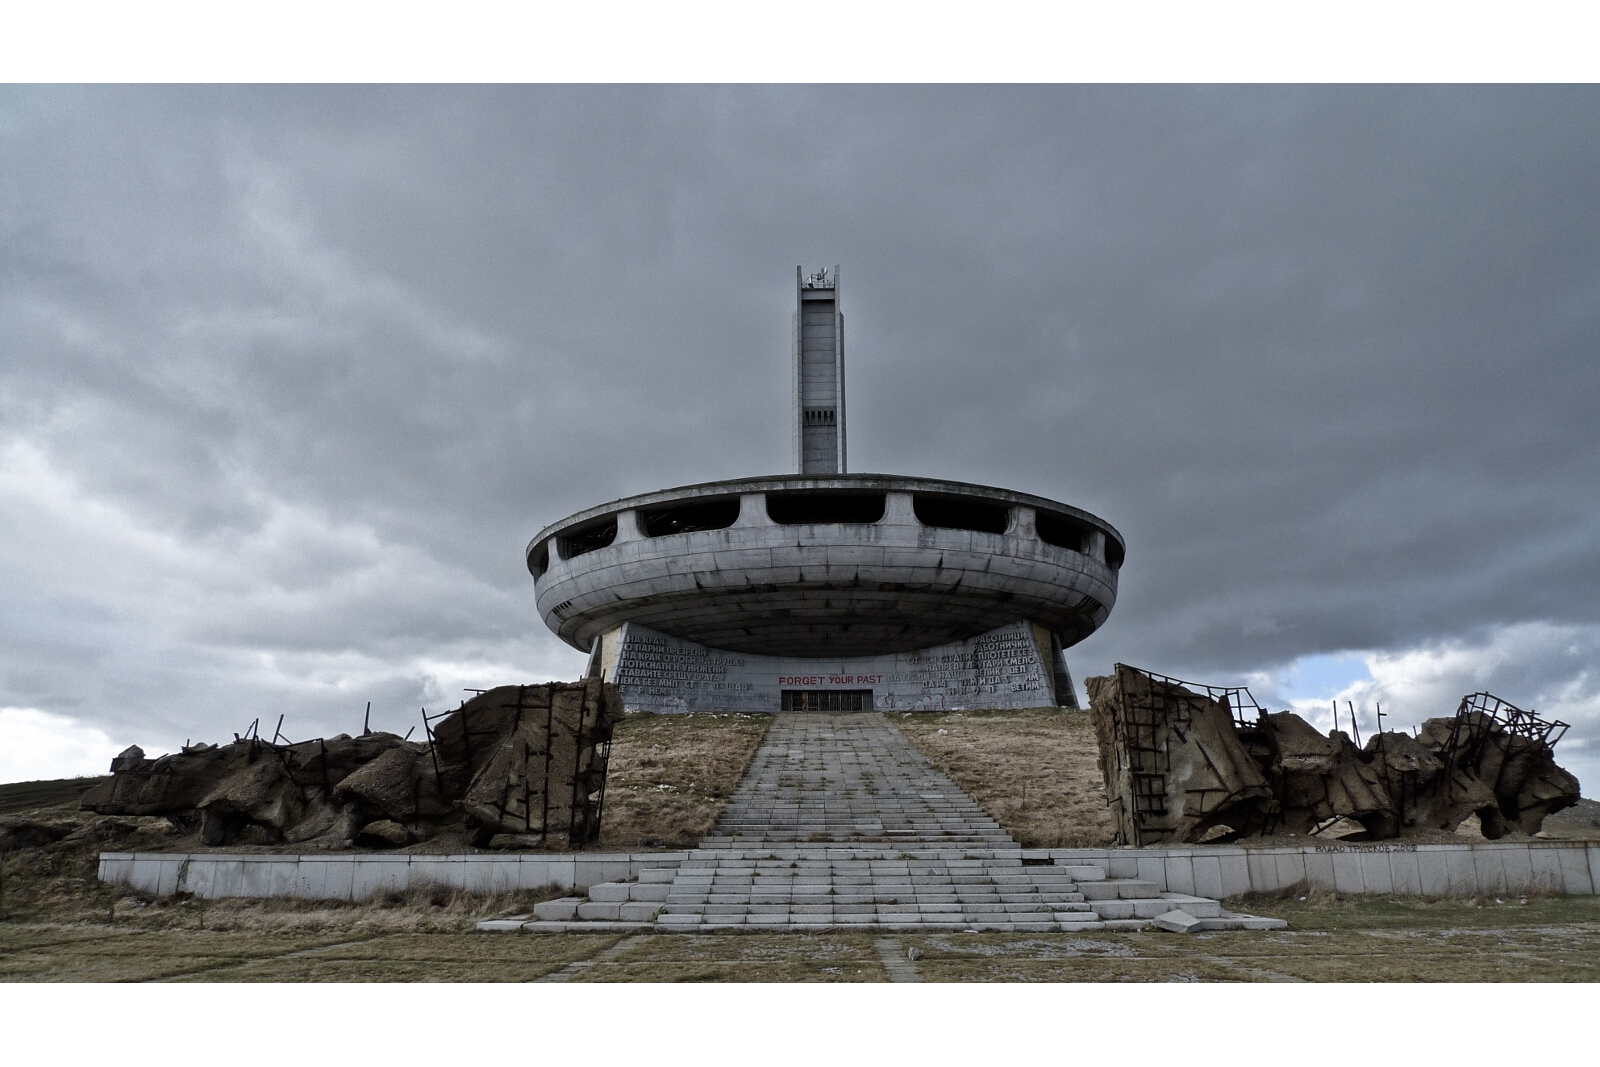 Memorial House of the Bulgarian Communist Party on mount Buzludzha